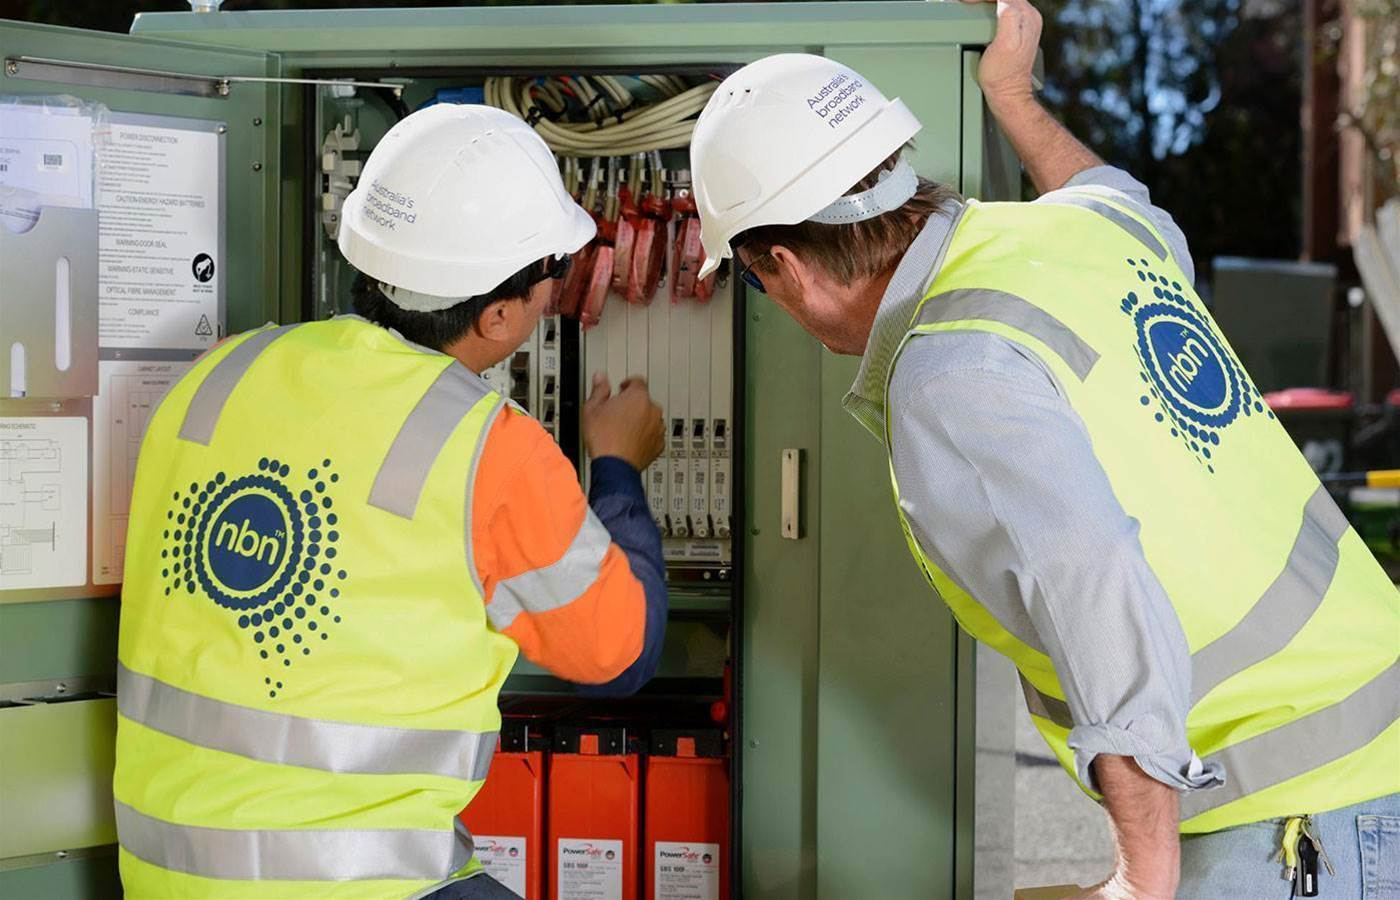 Optus to review contract with NBN over HFC delays